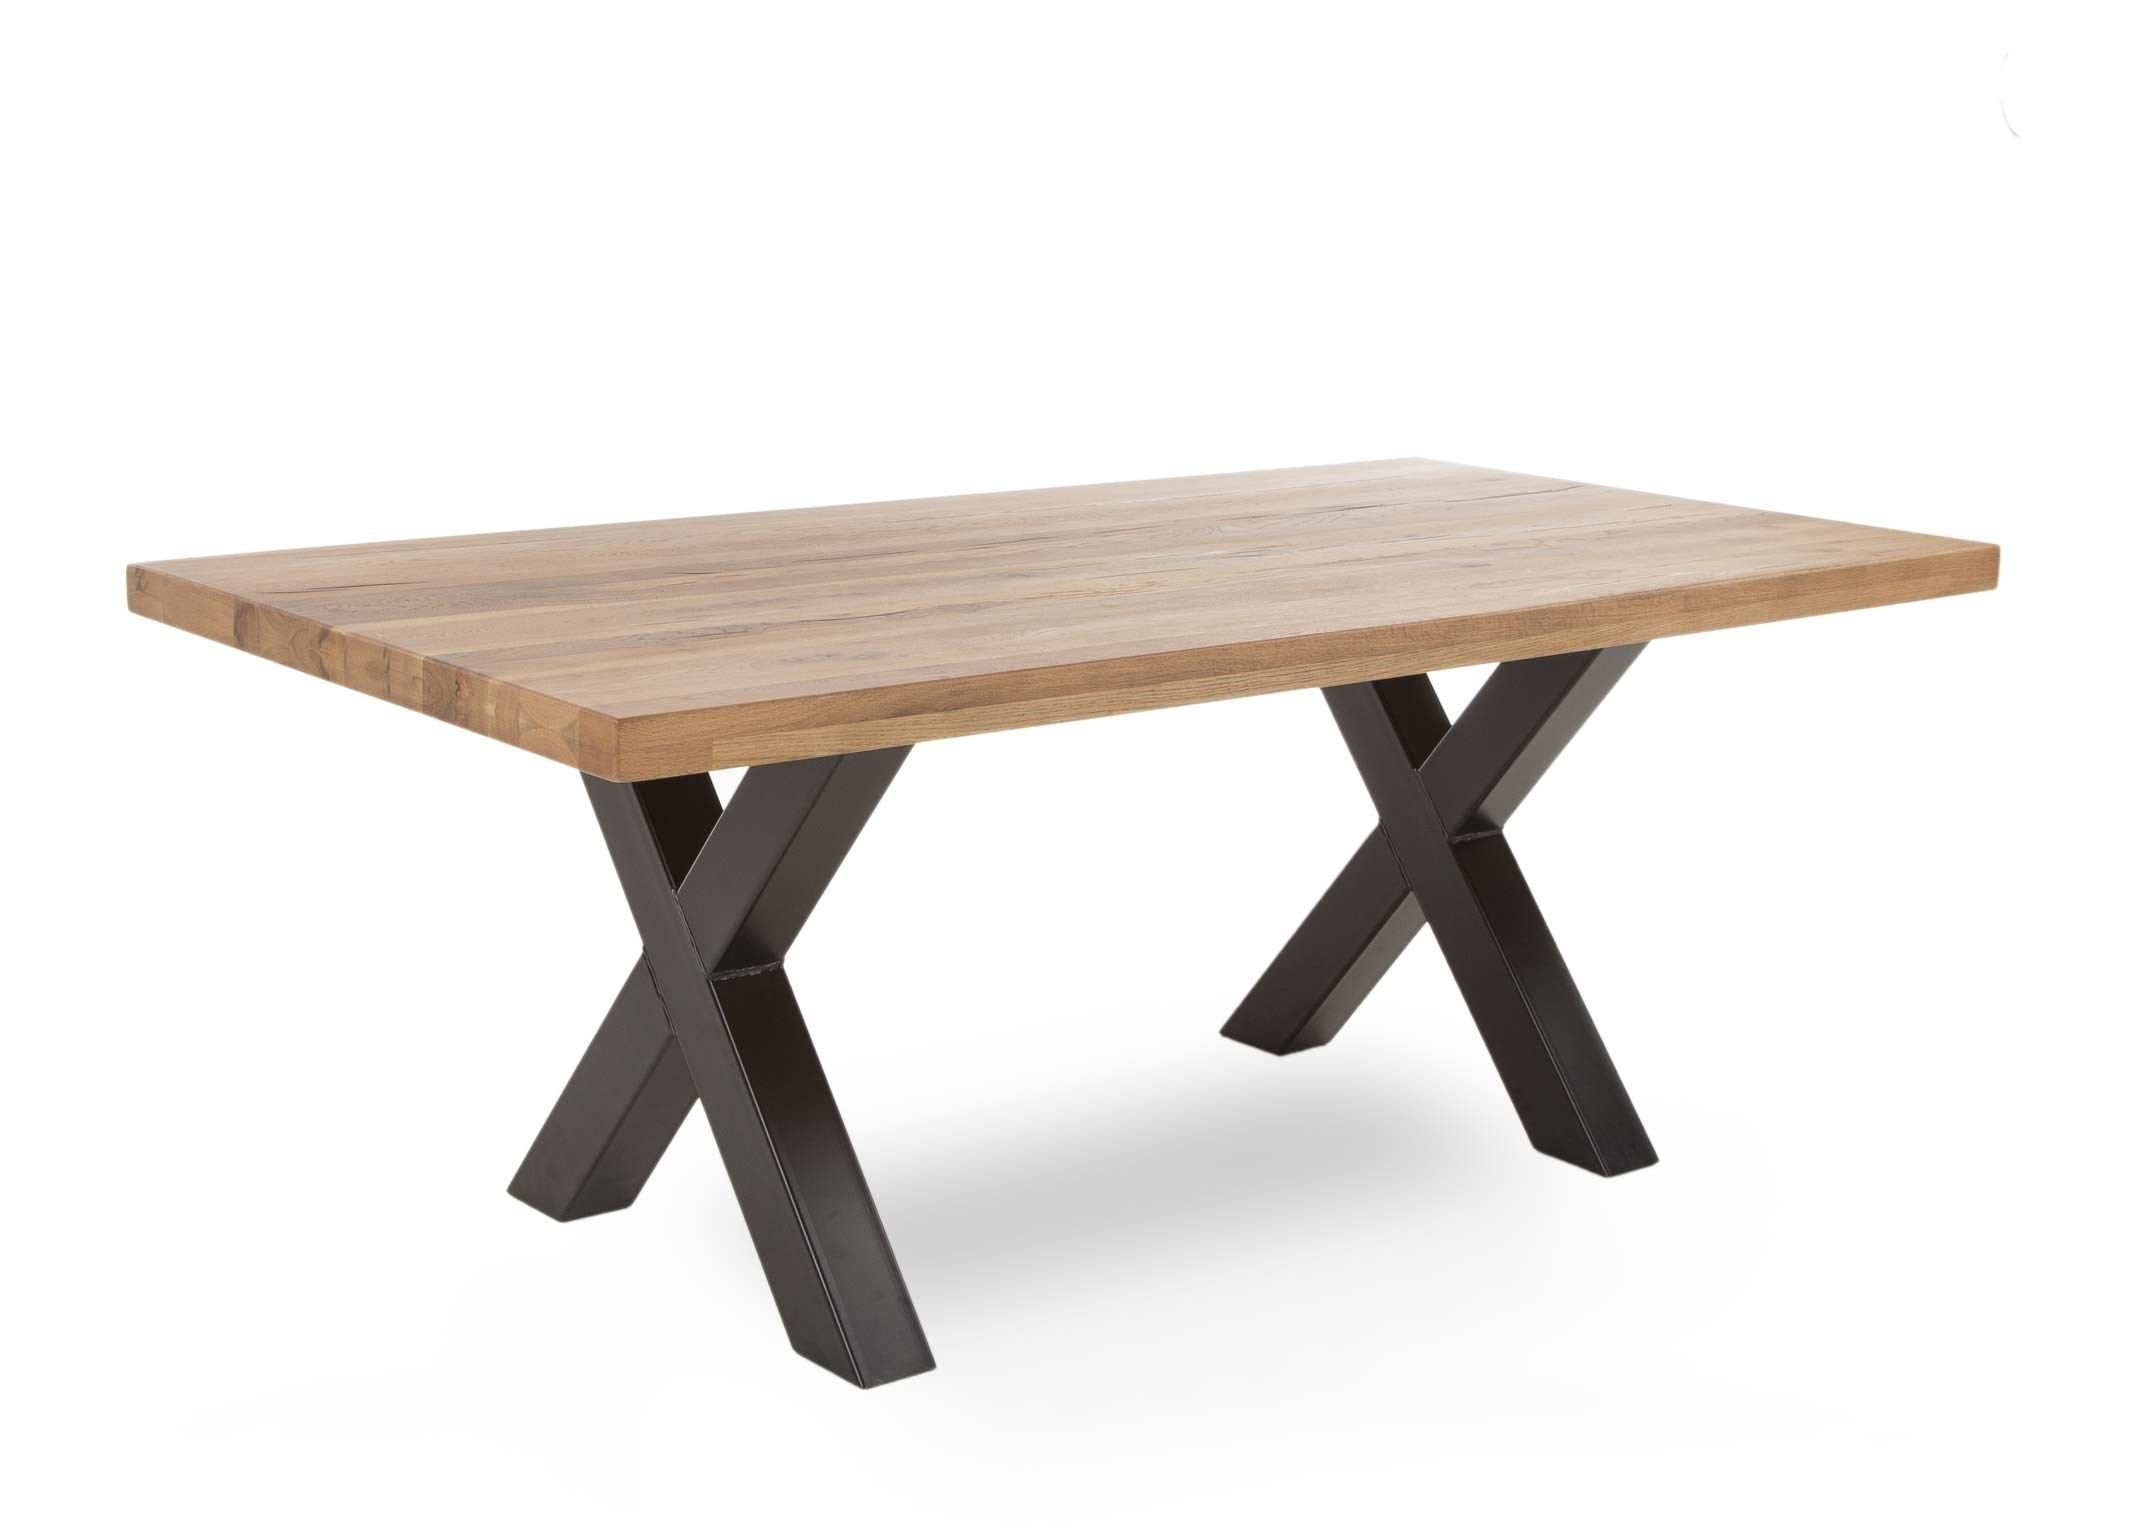 GENEVA LARGE DINING TABLE -L220cm x D100cm x H77cm. ANGLE VIEW